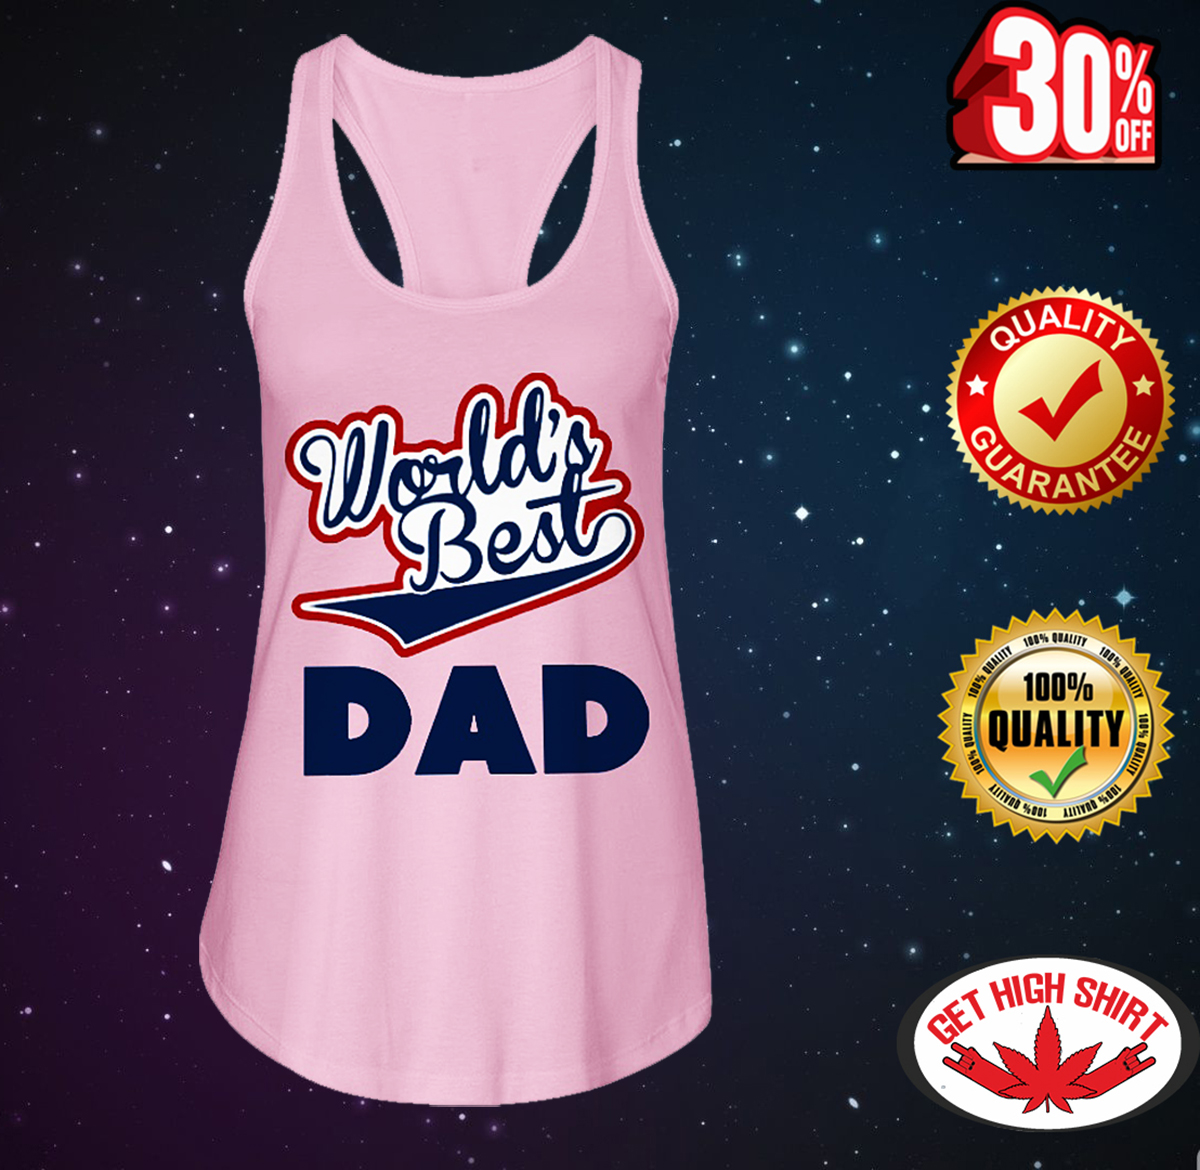 World's best dad flowy tank